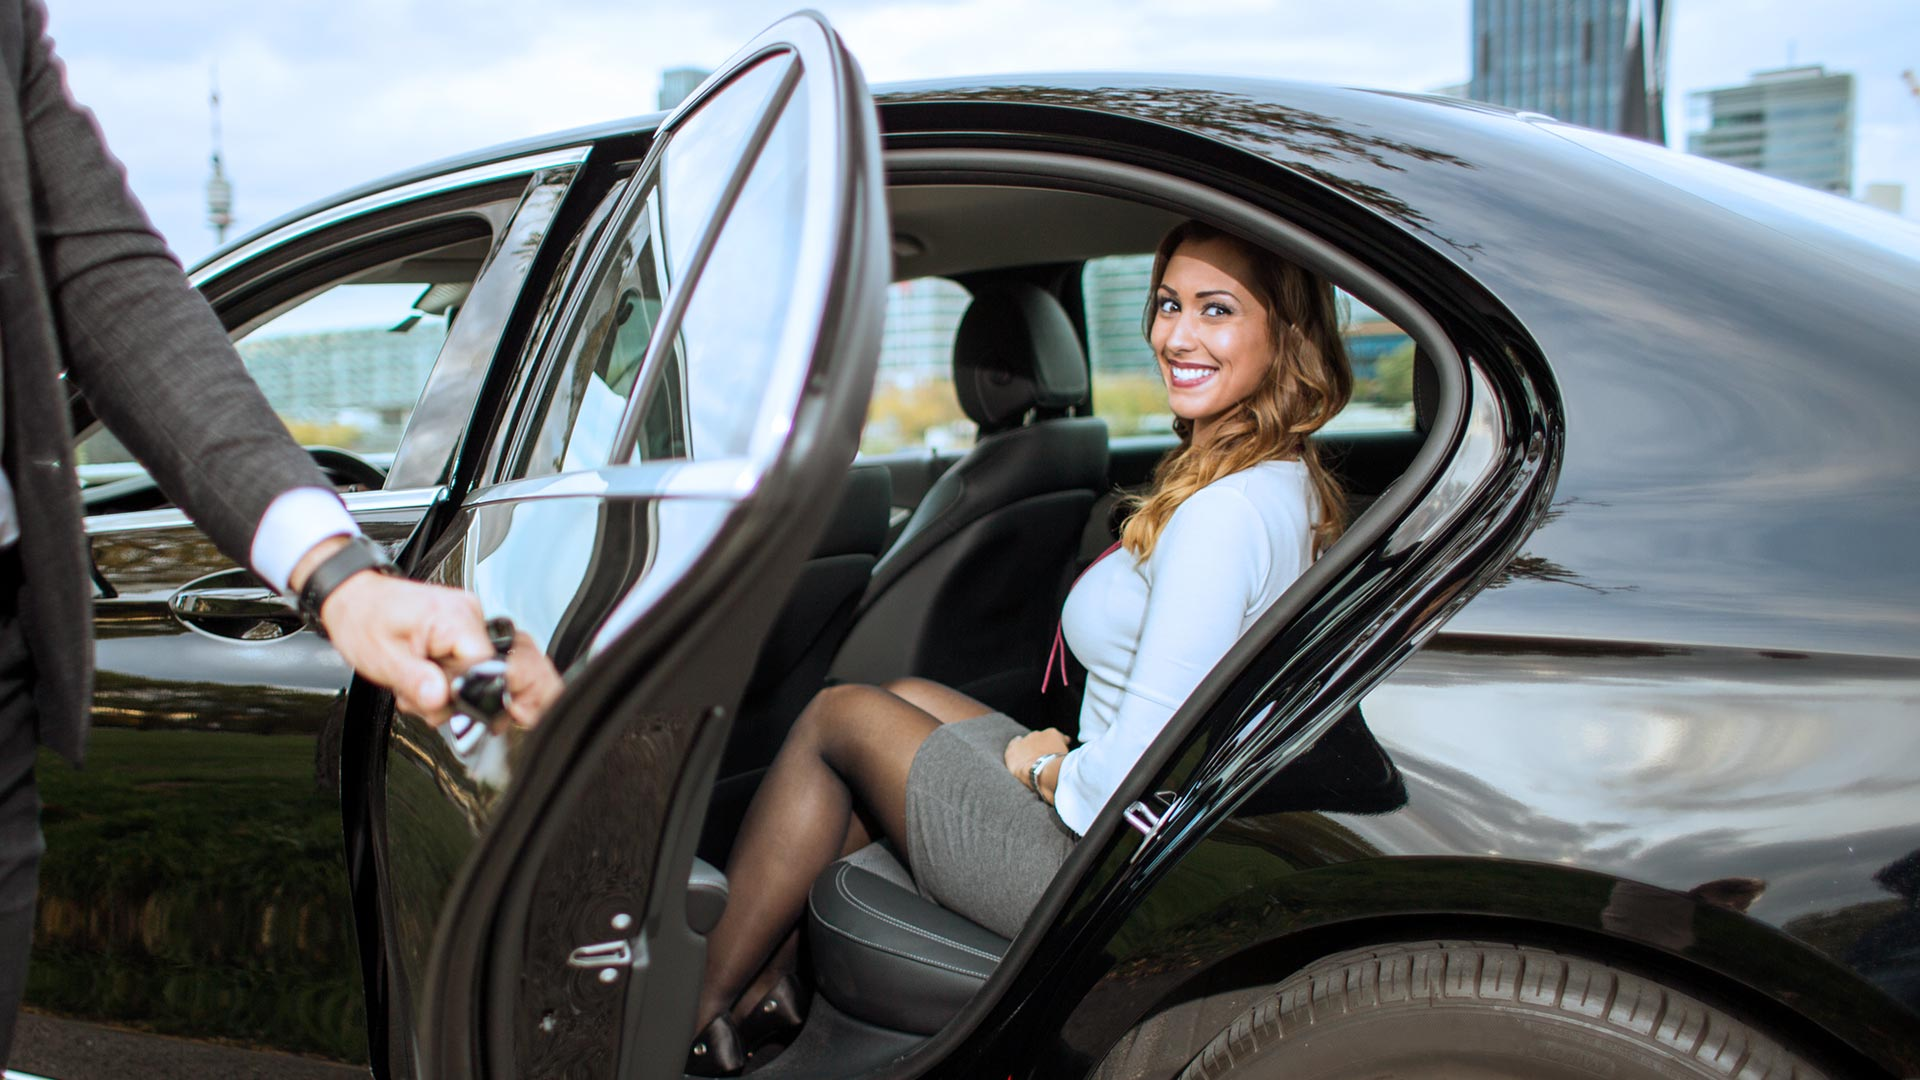 Limo service in West Haven CT